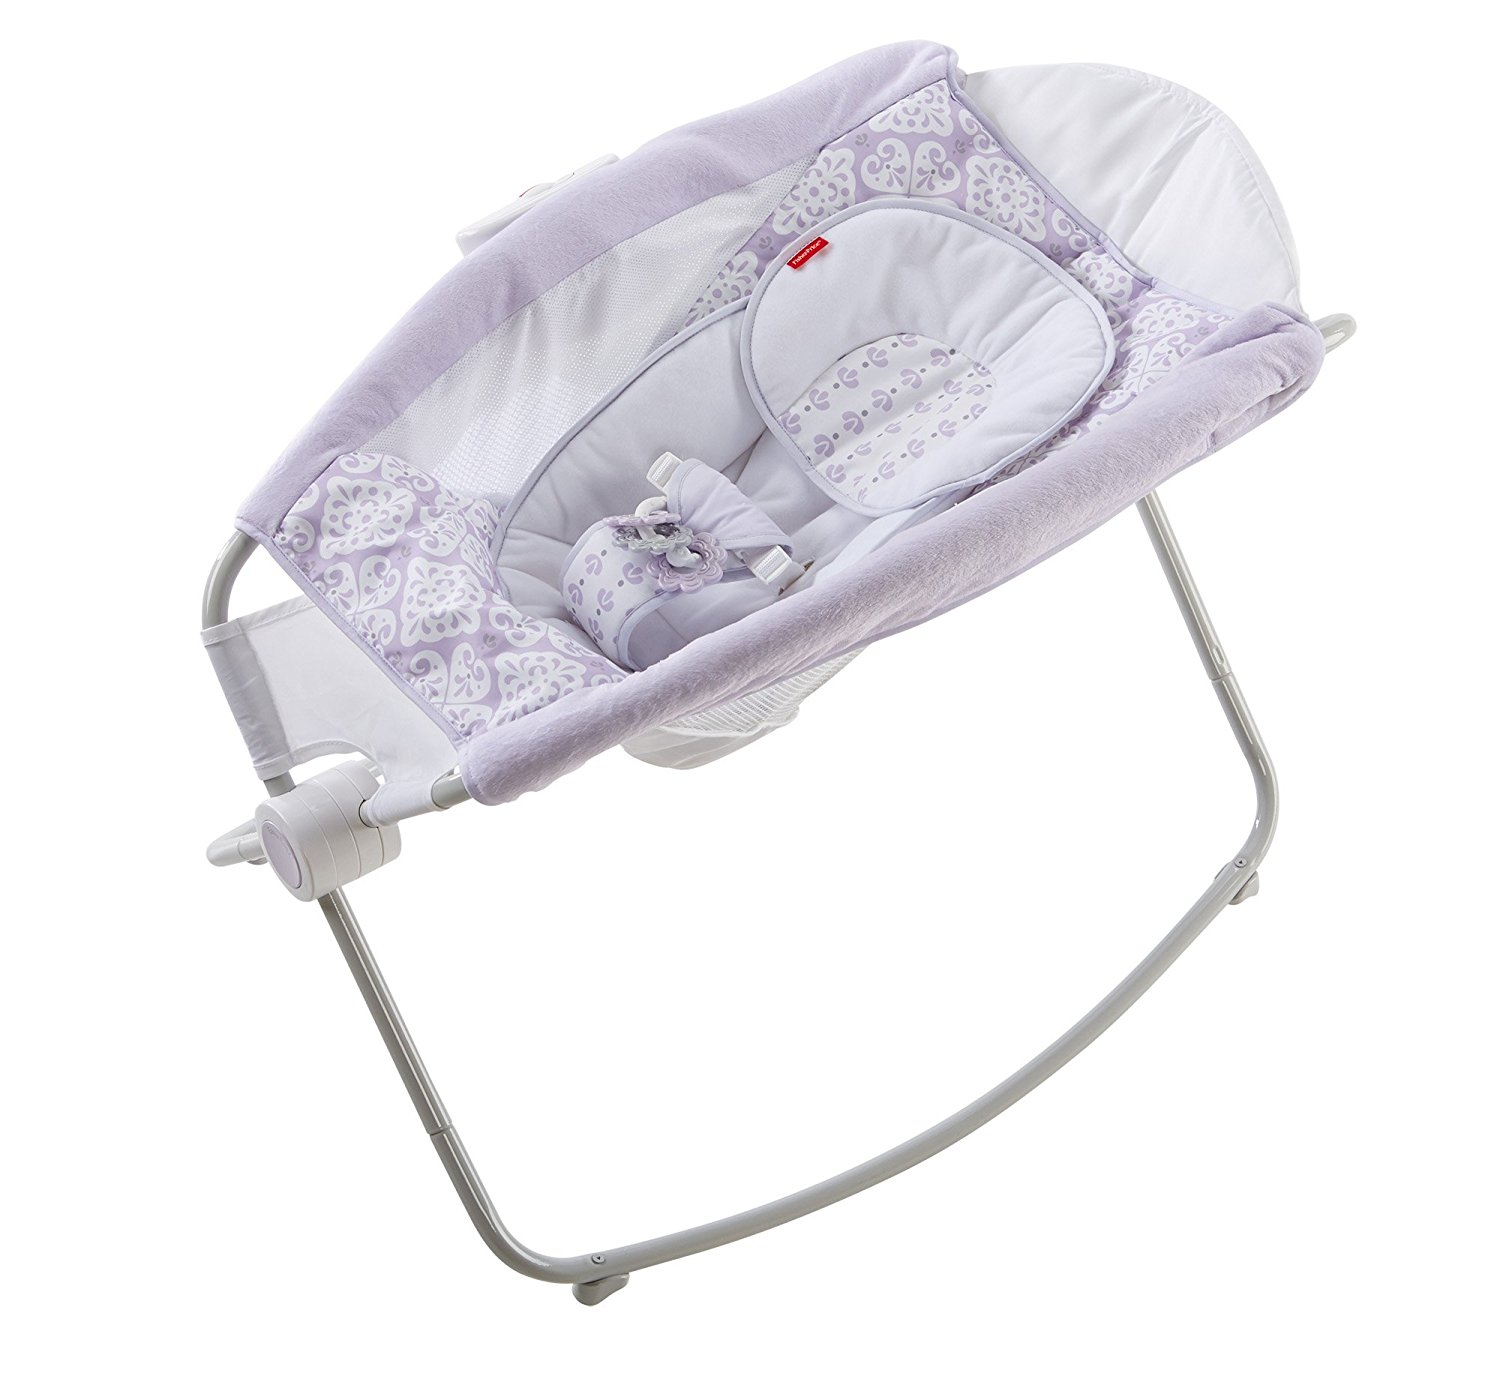 and bouncers newborn fisher swings sweetie sleeper baby safety deluxe play rock gear price jumpers collections n products